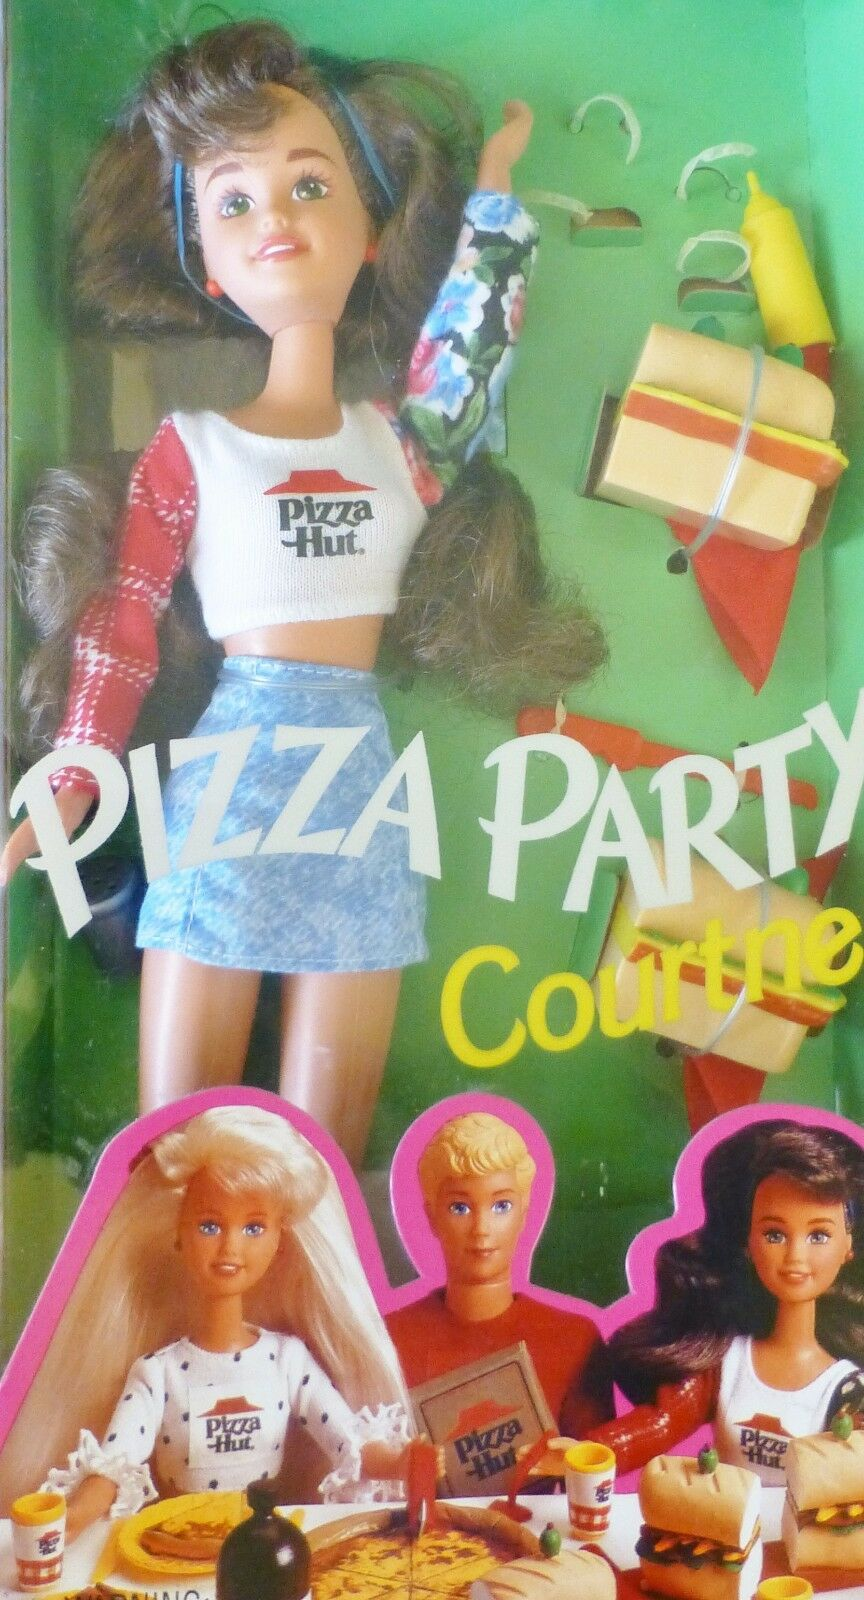 PIZZA PARTY Courtney SKIPPER'S amica Pizza Hut BARBIE 1994 NRFB  RARO  autentico